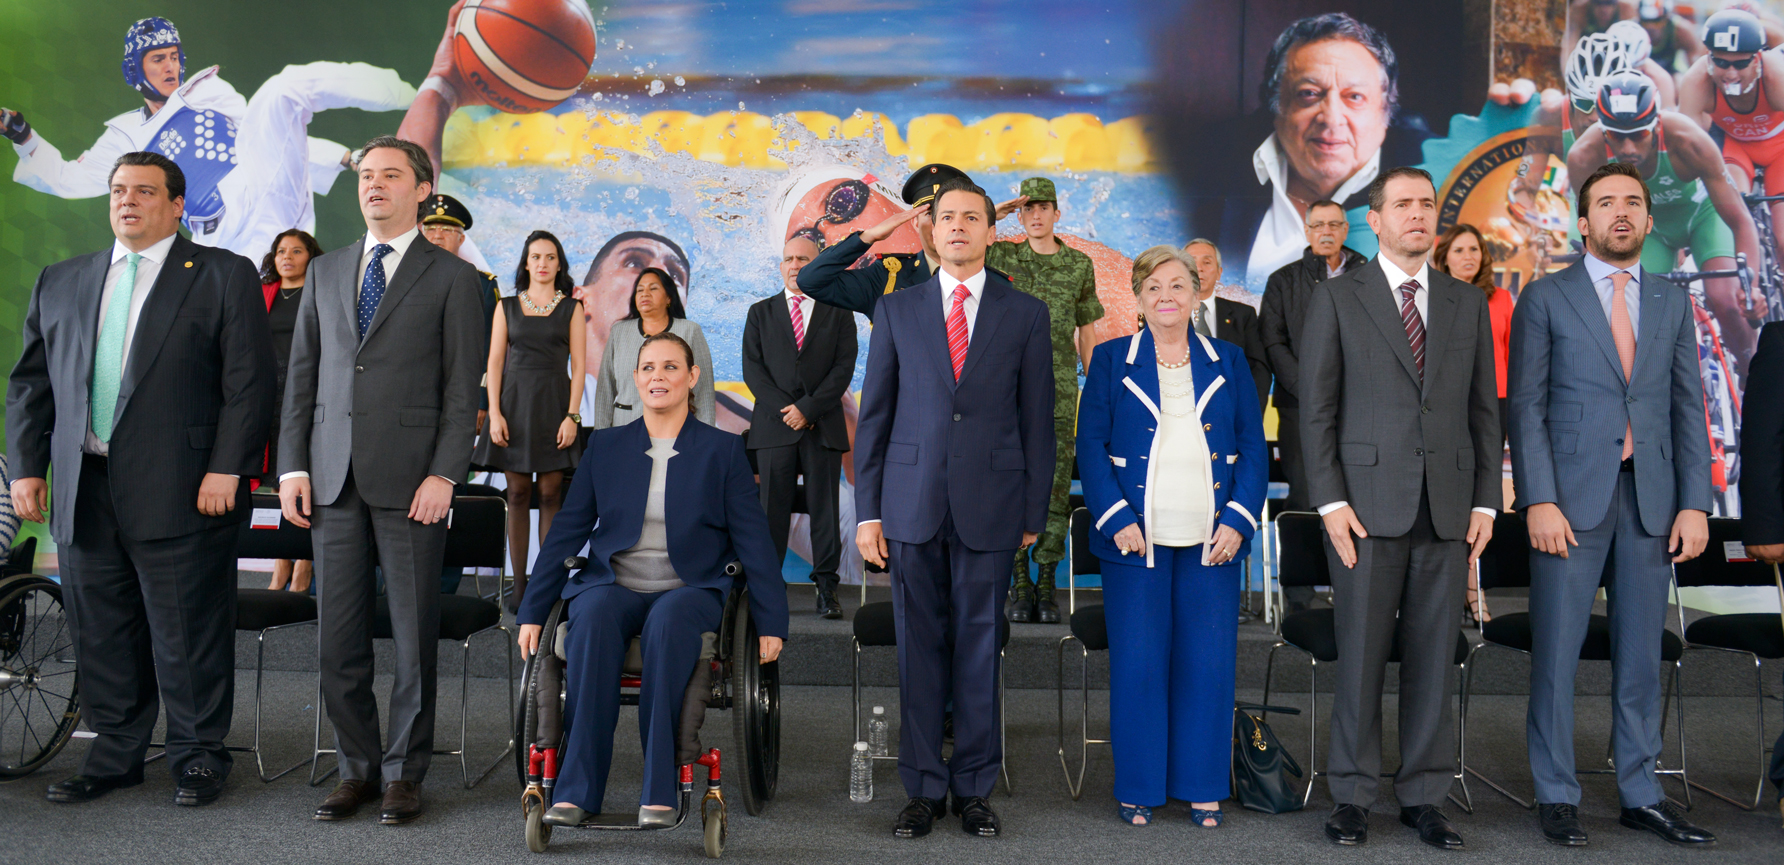 The president led the ceremony of the National Sports Award and National Sports Merit Award 2015.